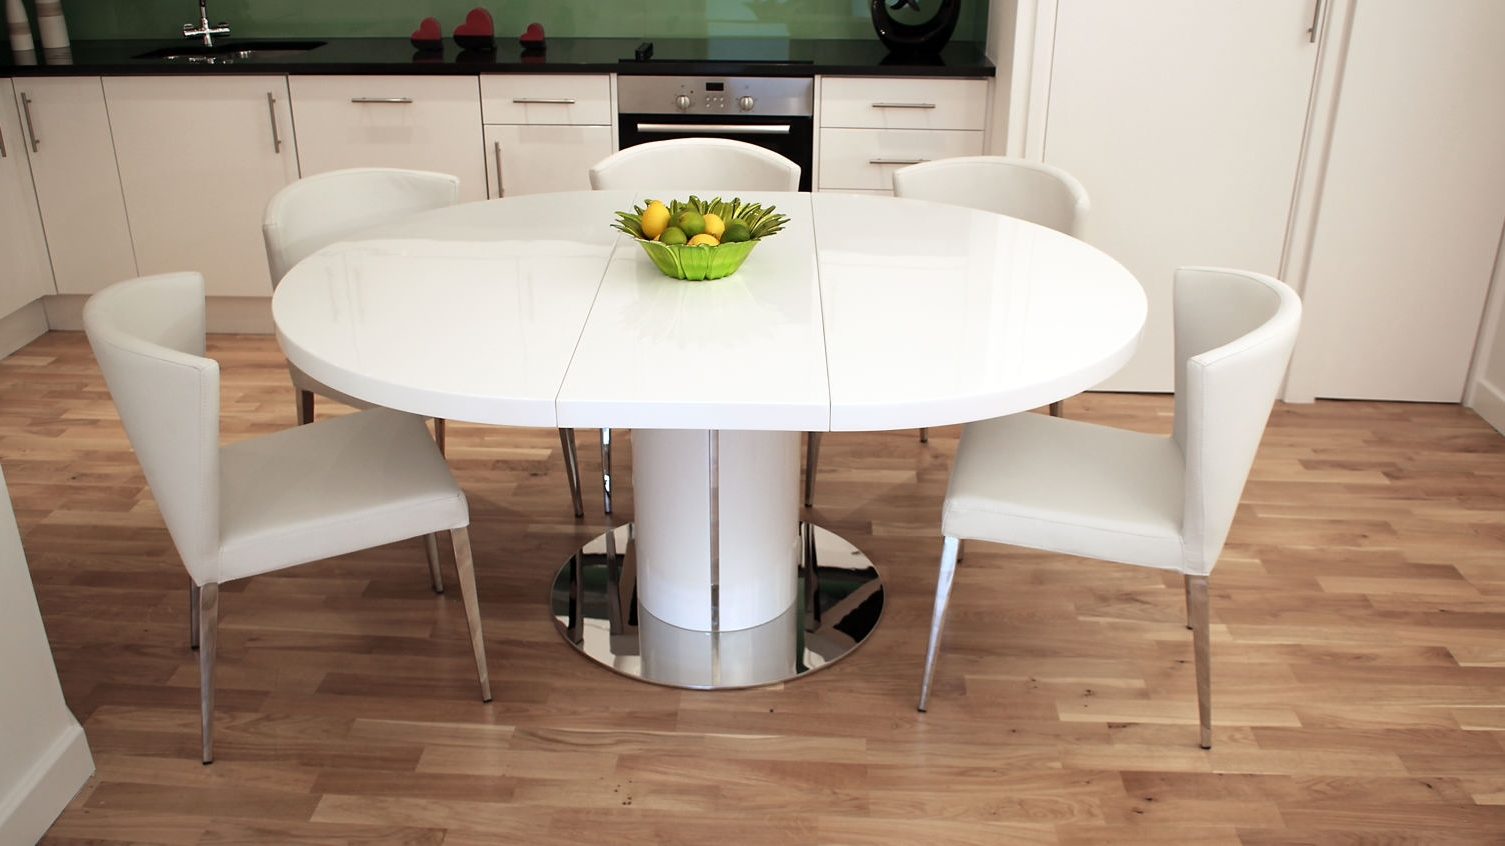 Preferred Diy Painting White Round Dining Table — The Home Redesign In Oval White High Gloss Dining Tables (View 9 of 25)